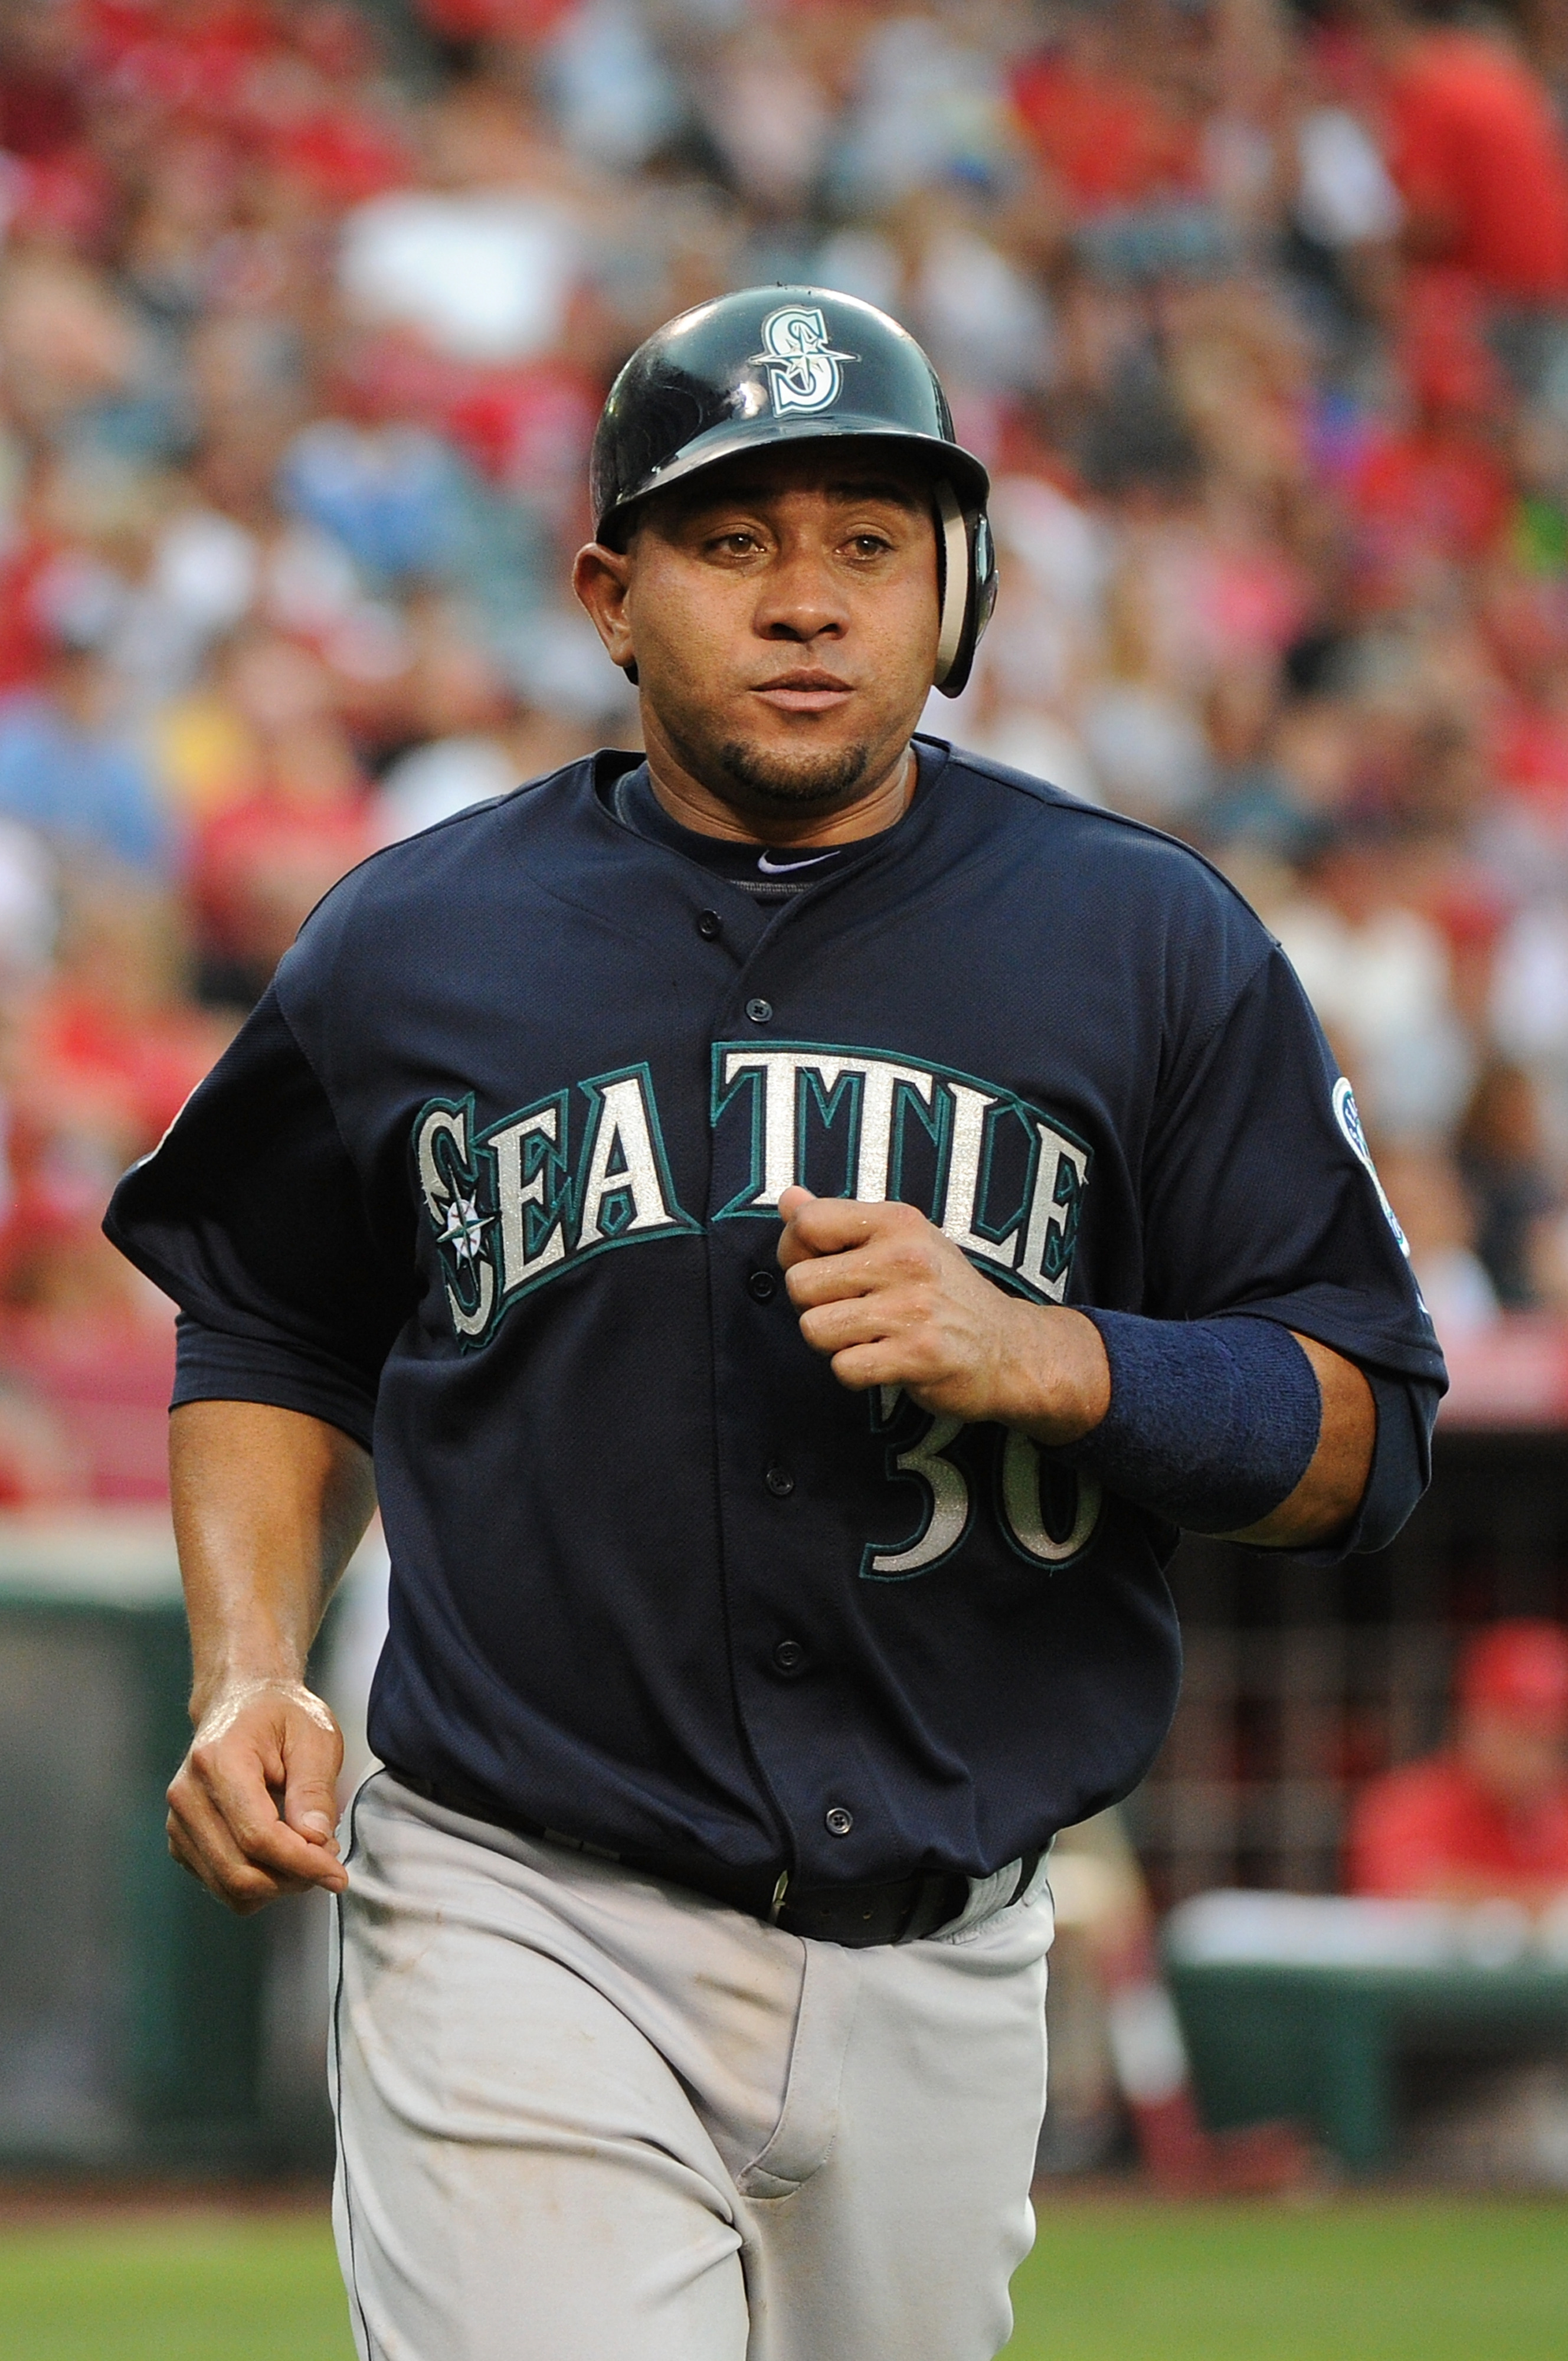 ANAHEIM, CA - AUGUST 11: Miguel Olivo #30 of the Seattle Mariners scores in the fourth inning against the Los Angeles Angels of Anaheim at Angel Stadium of Anaheim on August 11, 2012 in Anaheim, California. (Photo by Lisa Blumenfeld/Getty Images)